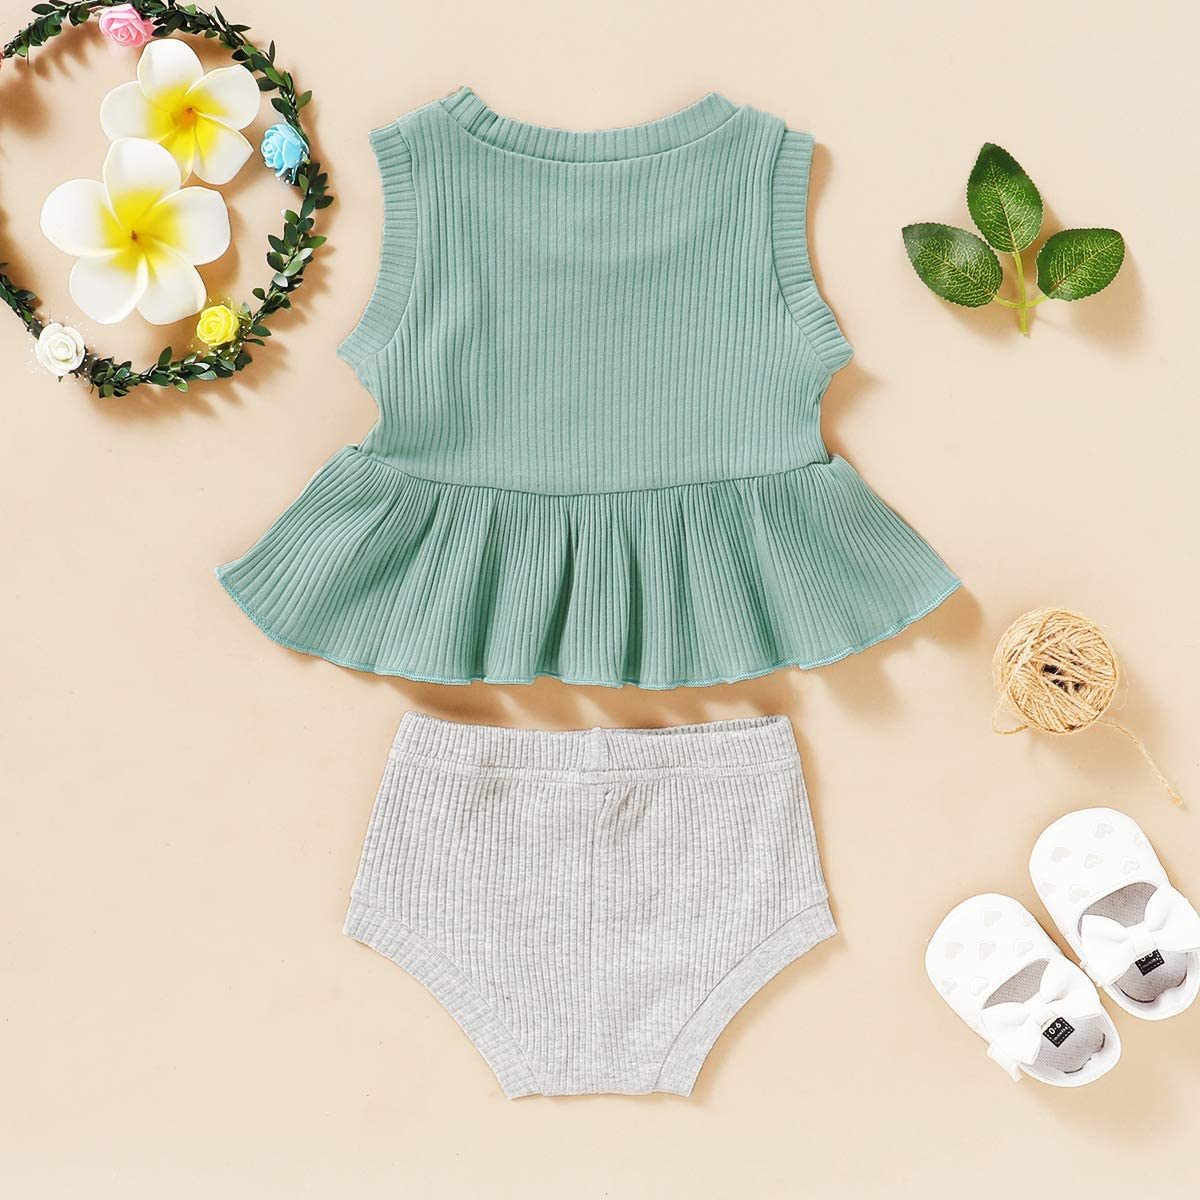 Toddler Baby Girl Clothes Summer Outfits Short Sleeve Cotton Tops Solid Shorts Infant Baby Girl Outfits Set